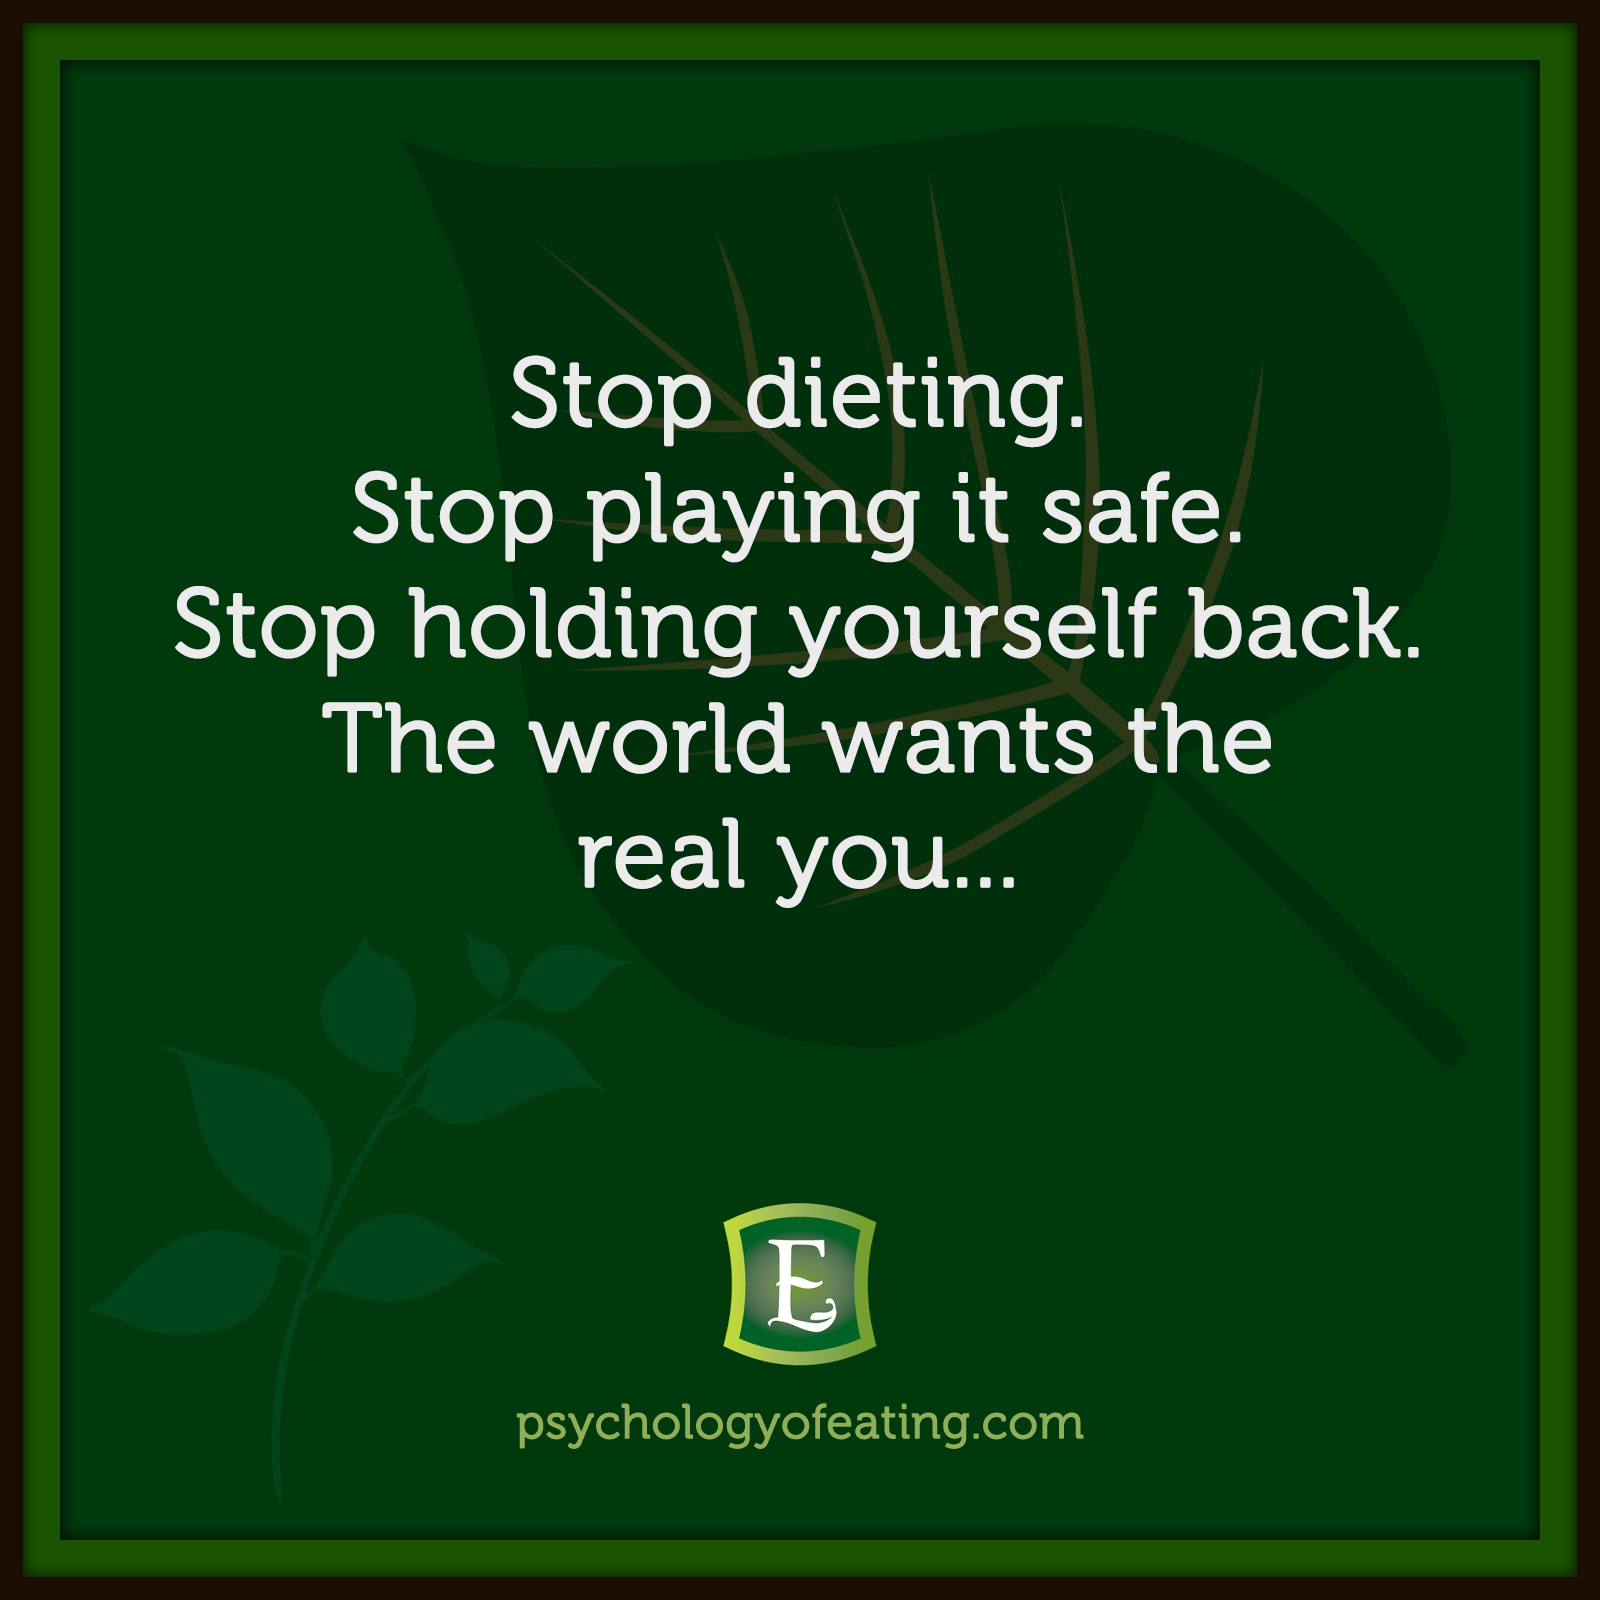 Stop dieting. Stop playing it safe. Stop holding yourself back. The world wants the real you... #health #nutrition #eatingpsychology #IPE